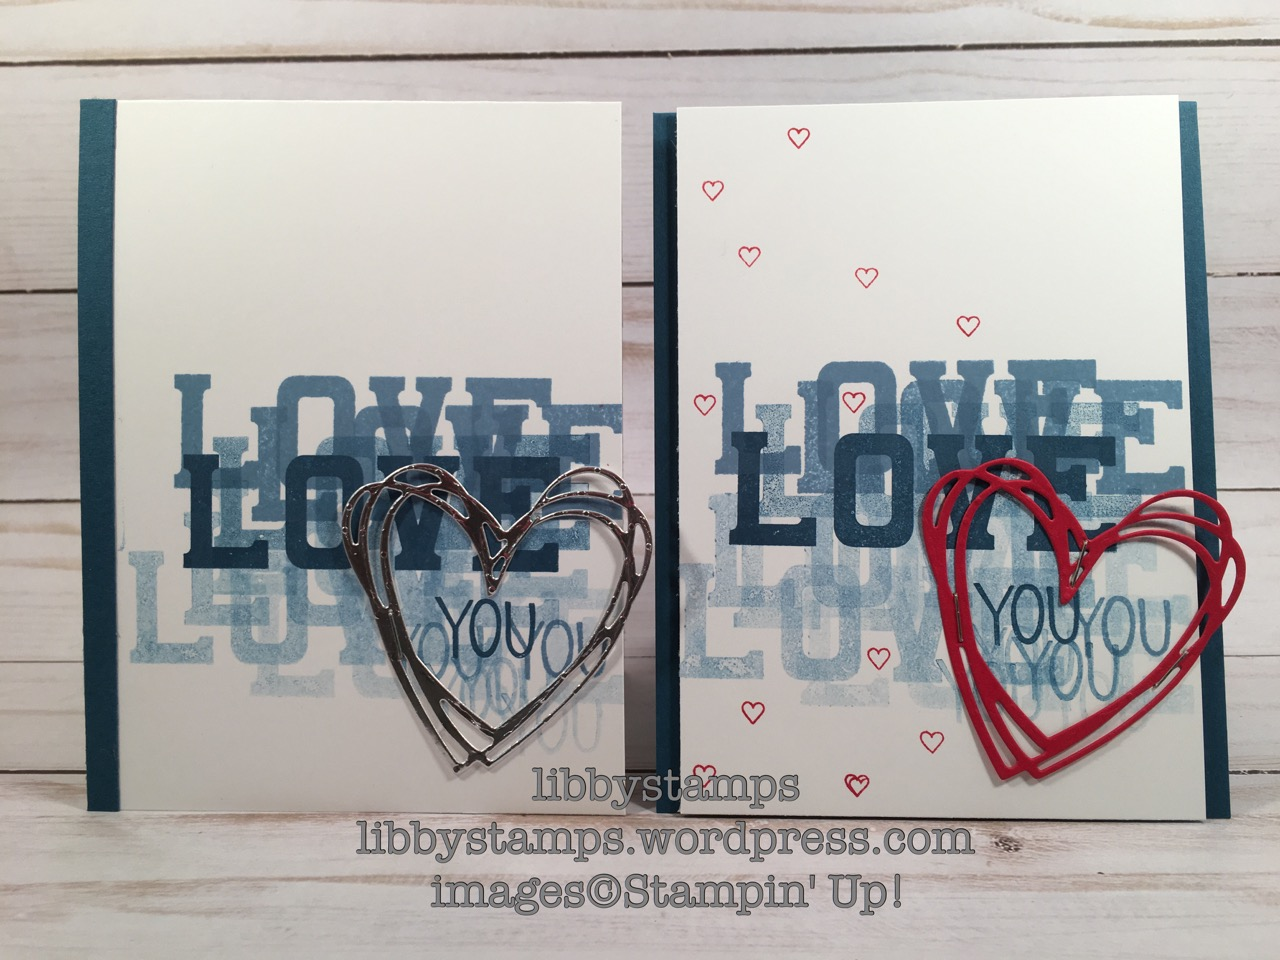 libbystamps, stampin up, sale-a-bration 2017, SAB17, Sunshine Wishes Thinlits, Double Take, Any Occasion